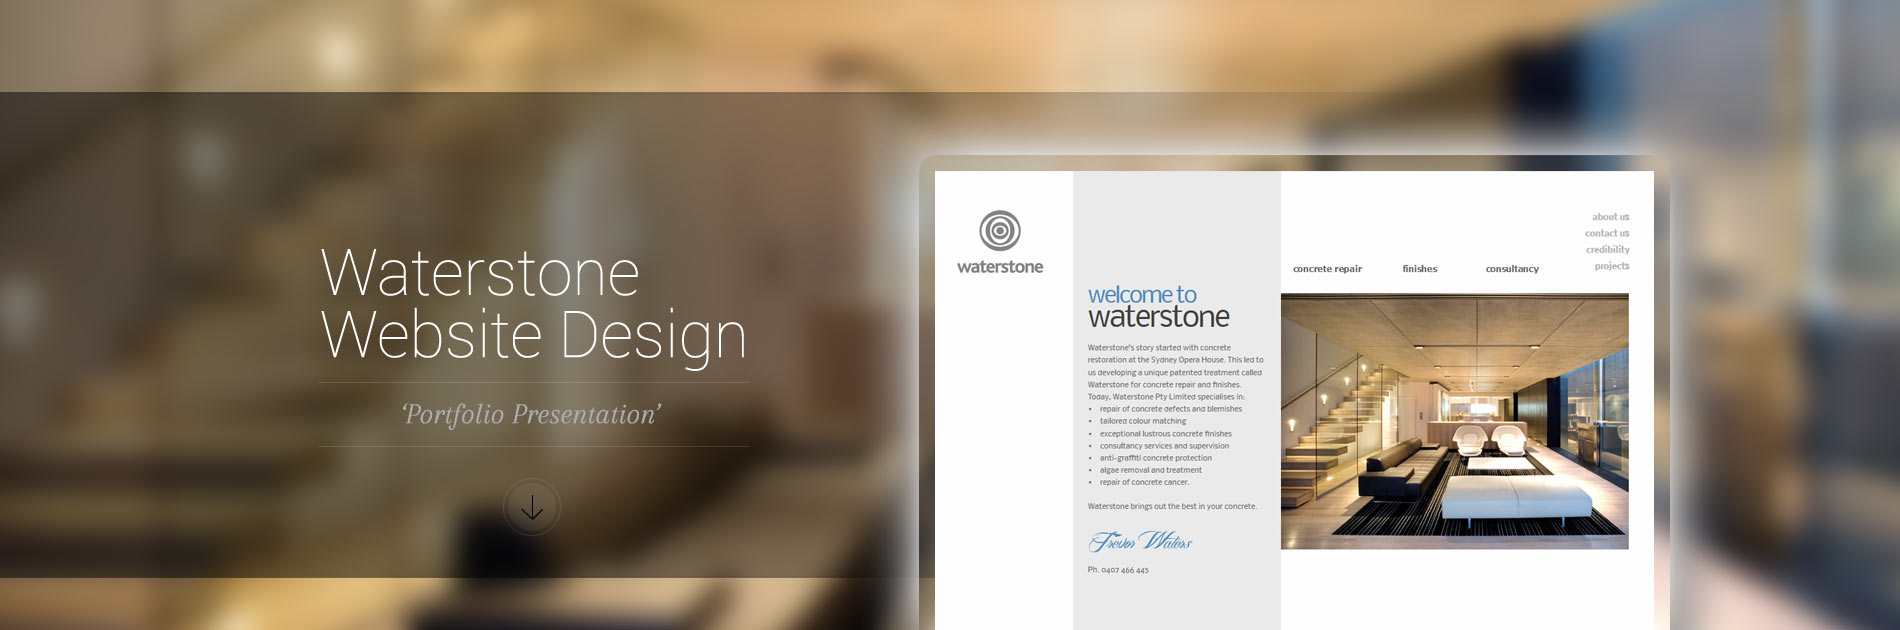 Website Design Waterstone